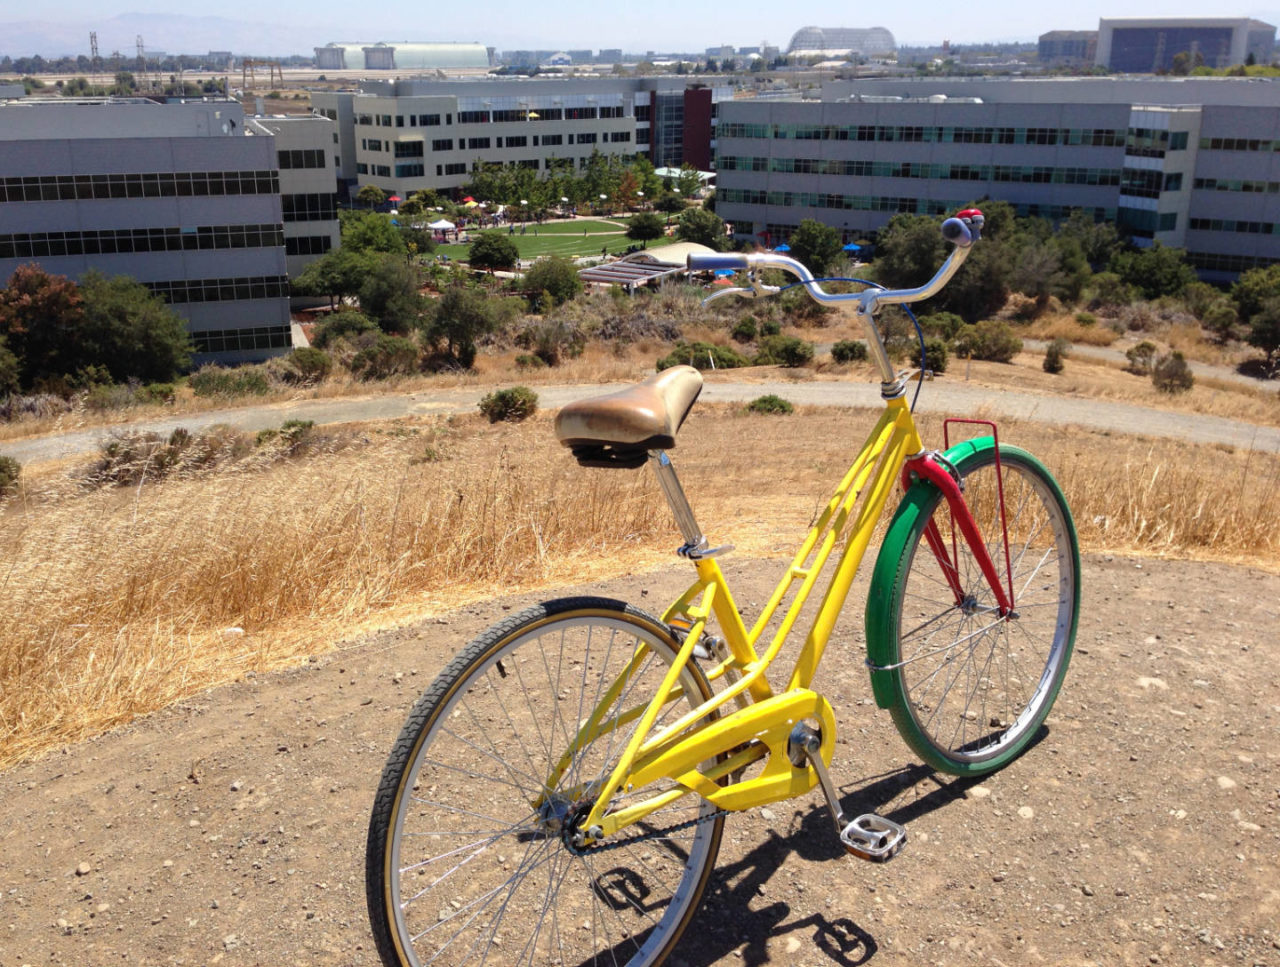 https://thesubmarine.it/wp-content/uploads/2019/01/Google_bike_on_Crittenden_Hill_overlooking_Google_campus_and_NASA_Ames-1280x967.jpg